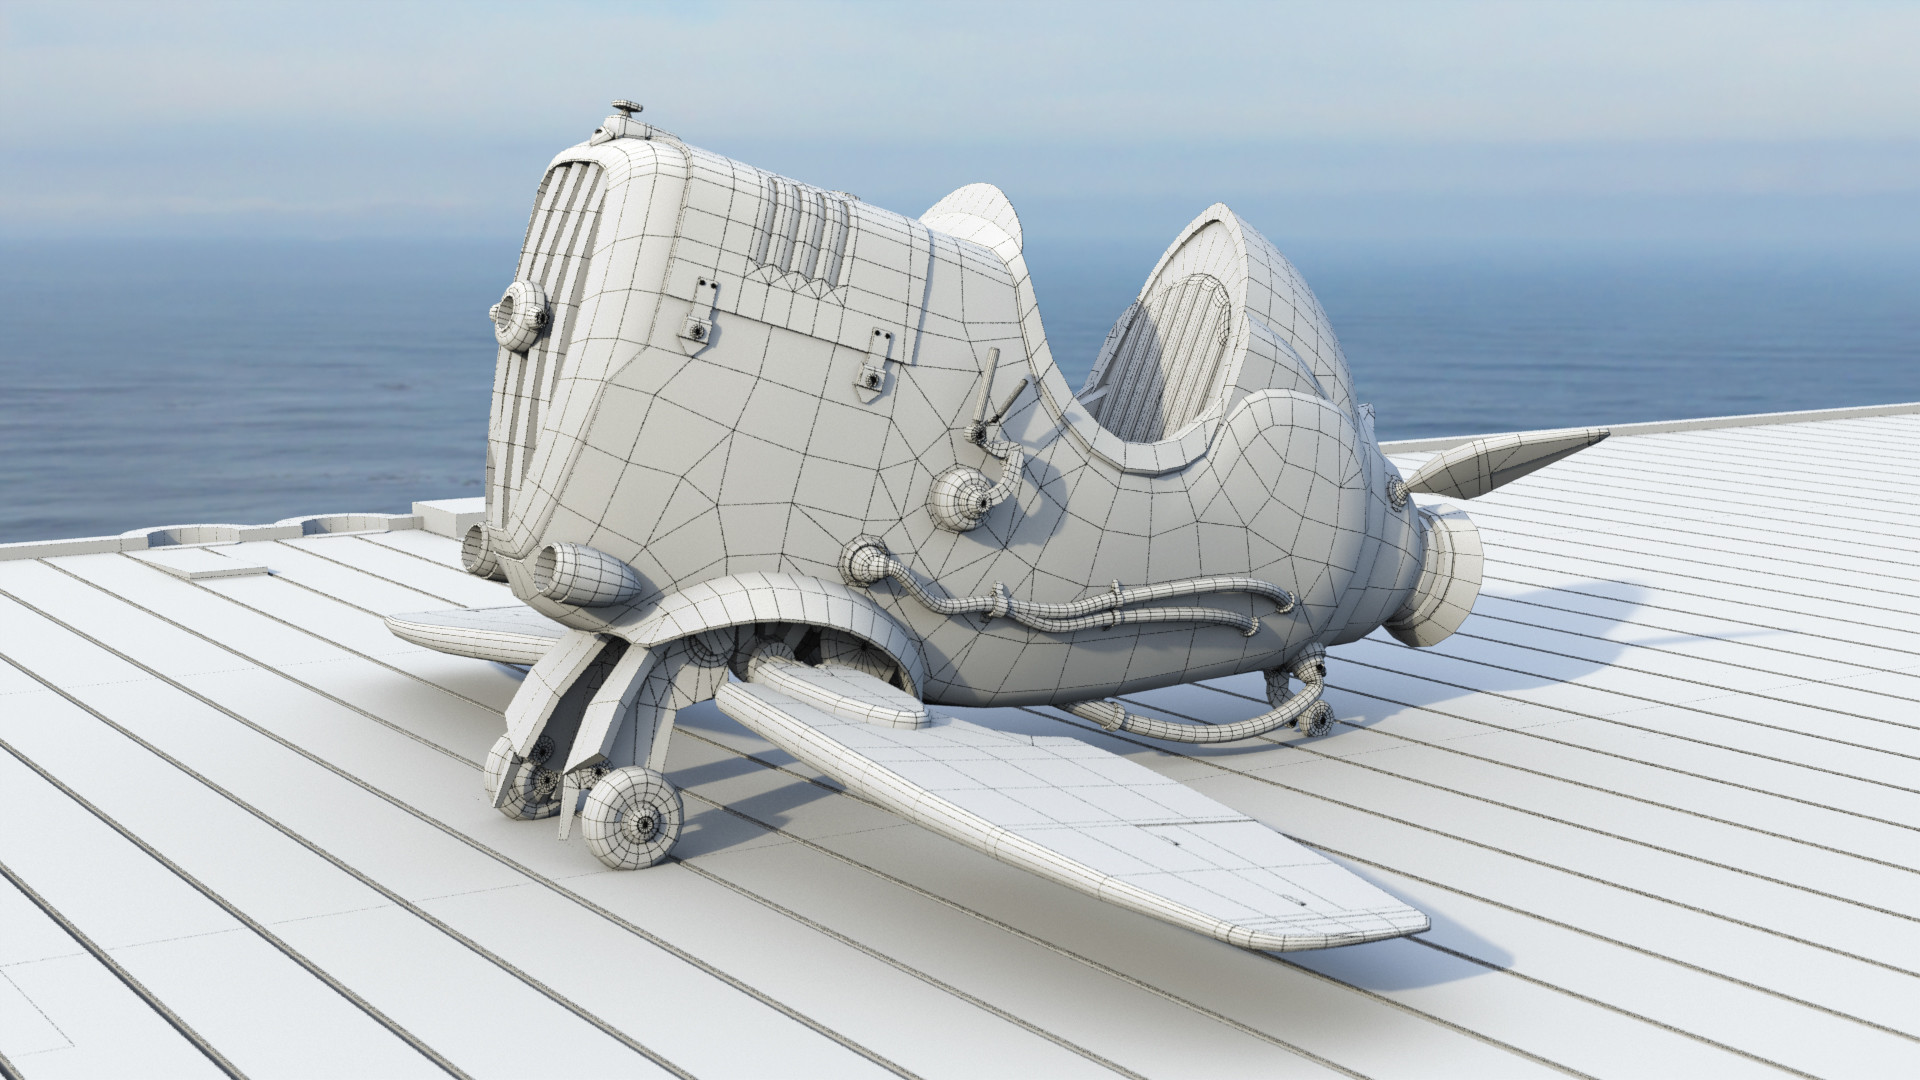 John griffiths seaplane wireframe 01